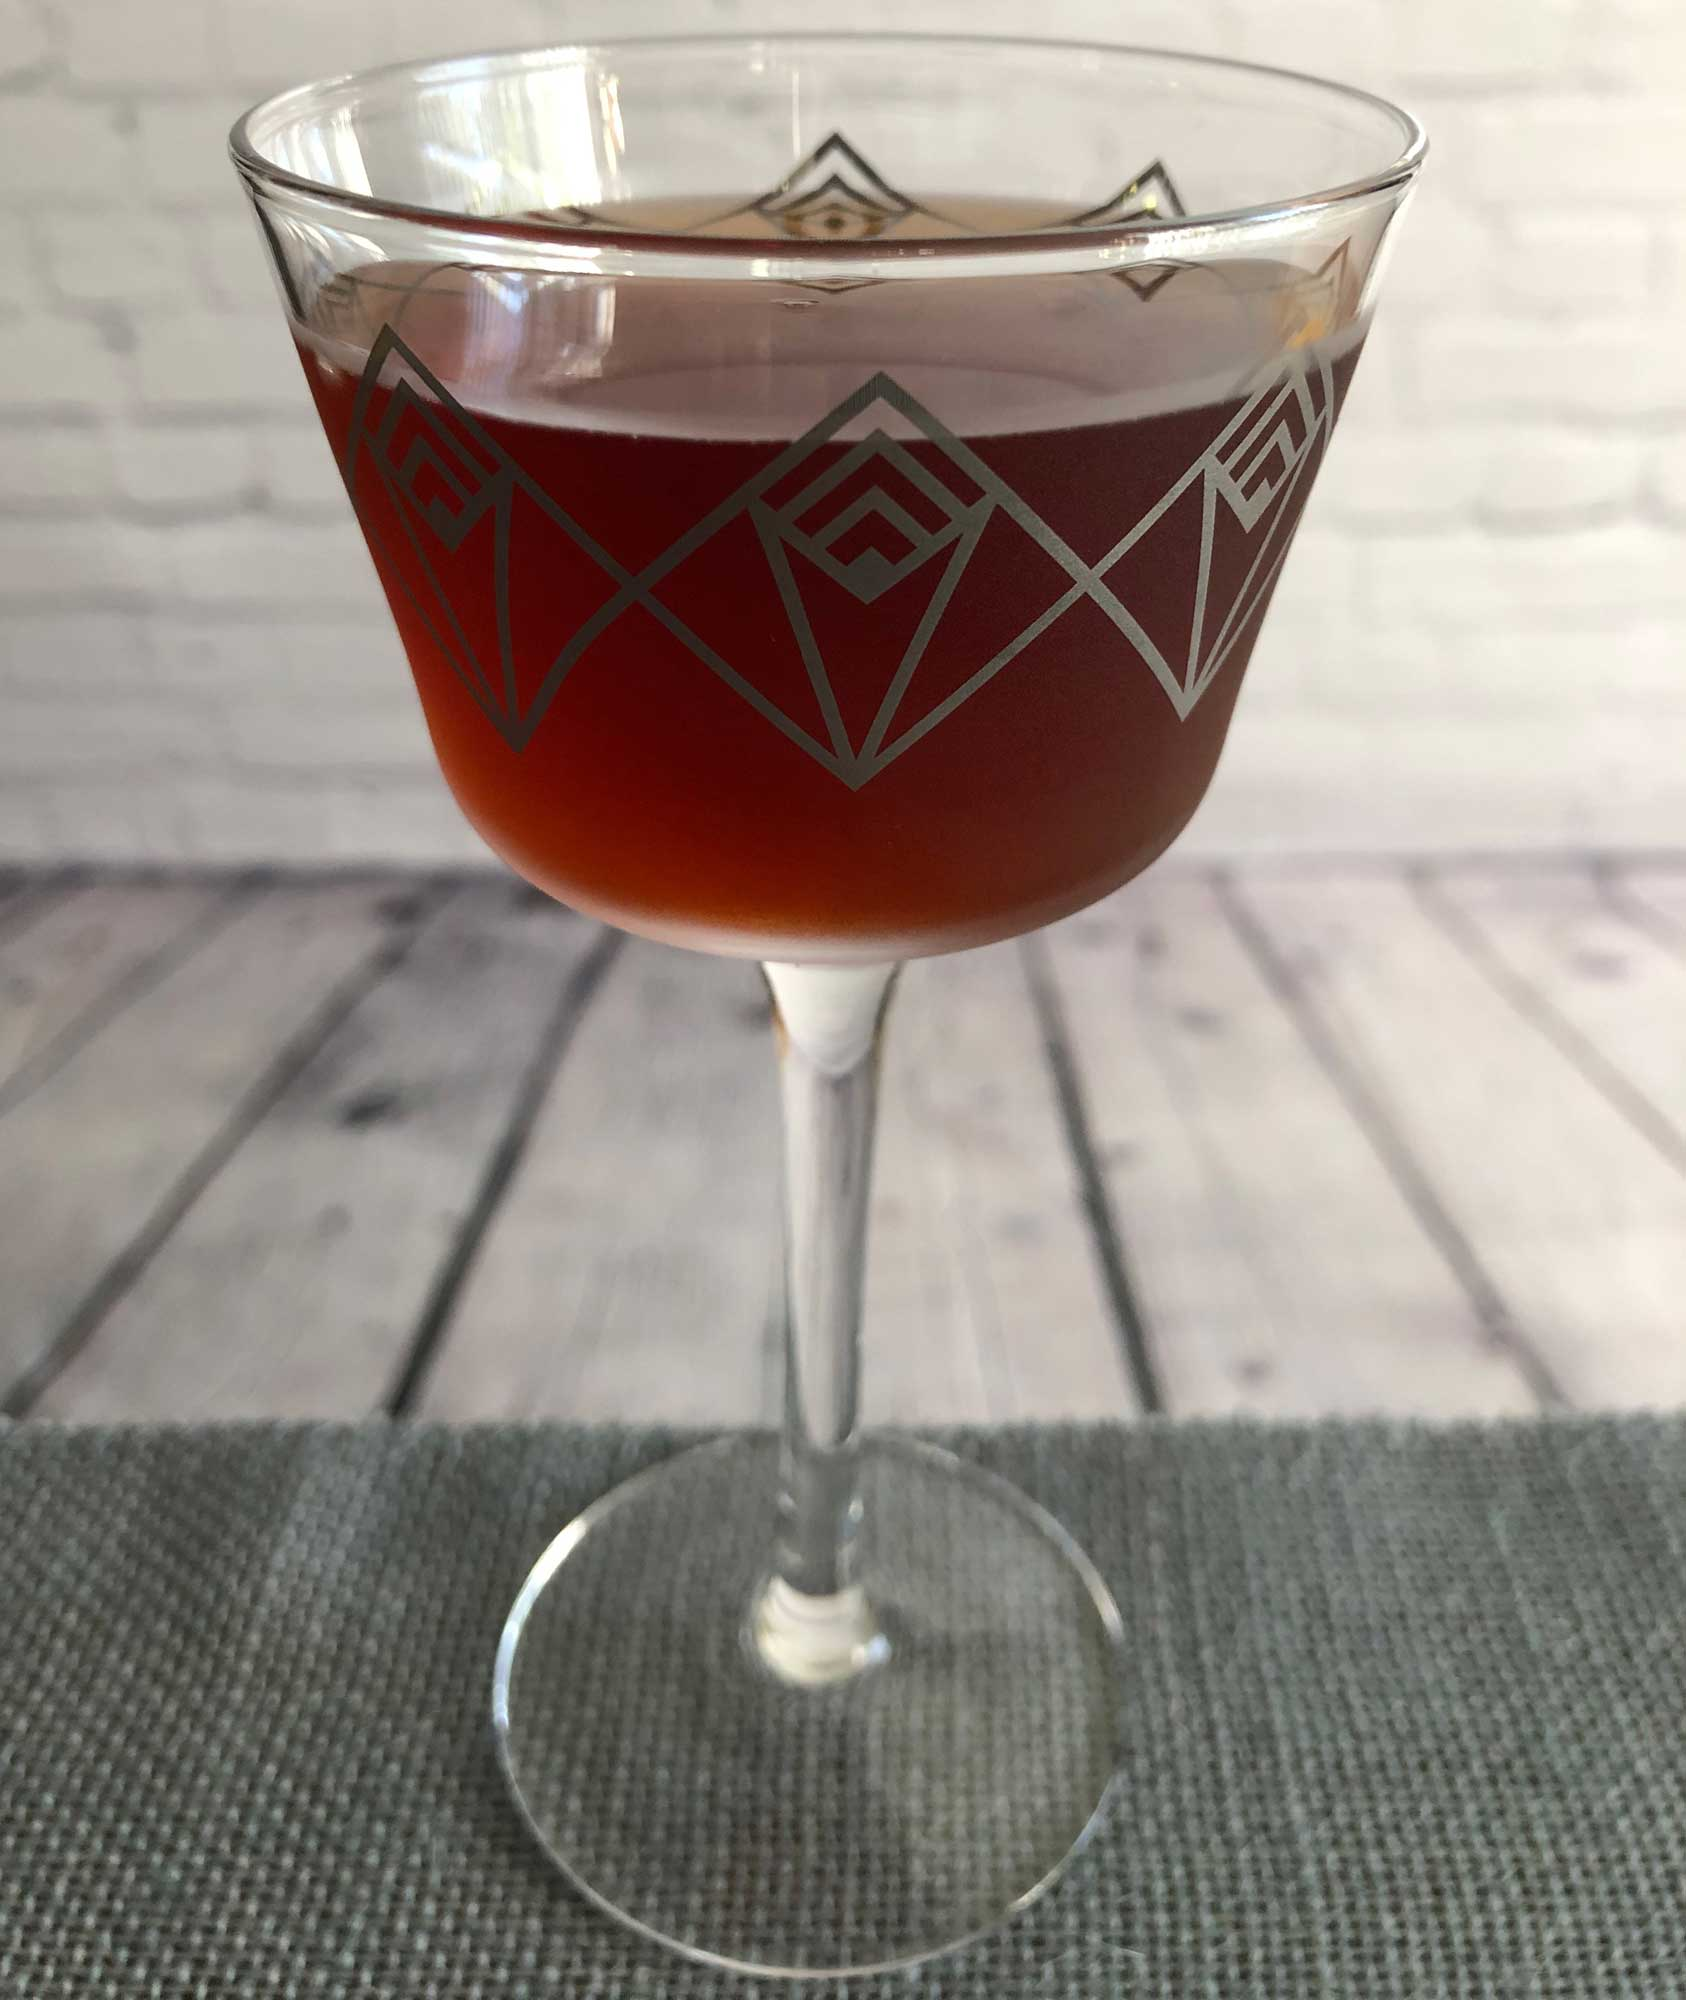 An example of the Navy Cut Shim, the mixed drink (cocktail), by Bob Herczeg, Sur-Lie, Maine, featuring rancio, Cocchi Dopo Teatro Vermouth Amaro, Aperitivo Cappelletti, Smith & Cross Traditional Jamaica Rum, orange bitters, and Laphroaig 10 Year Single Malt Scotch; photo by Lee Edwards